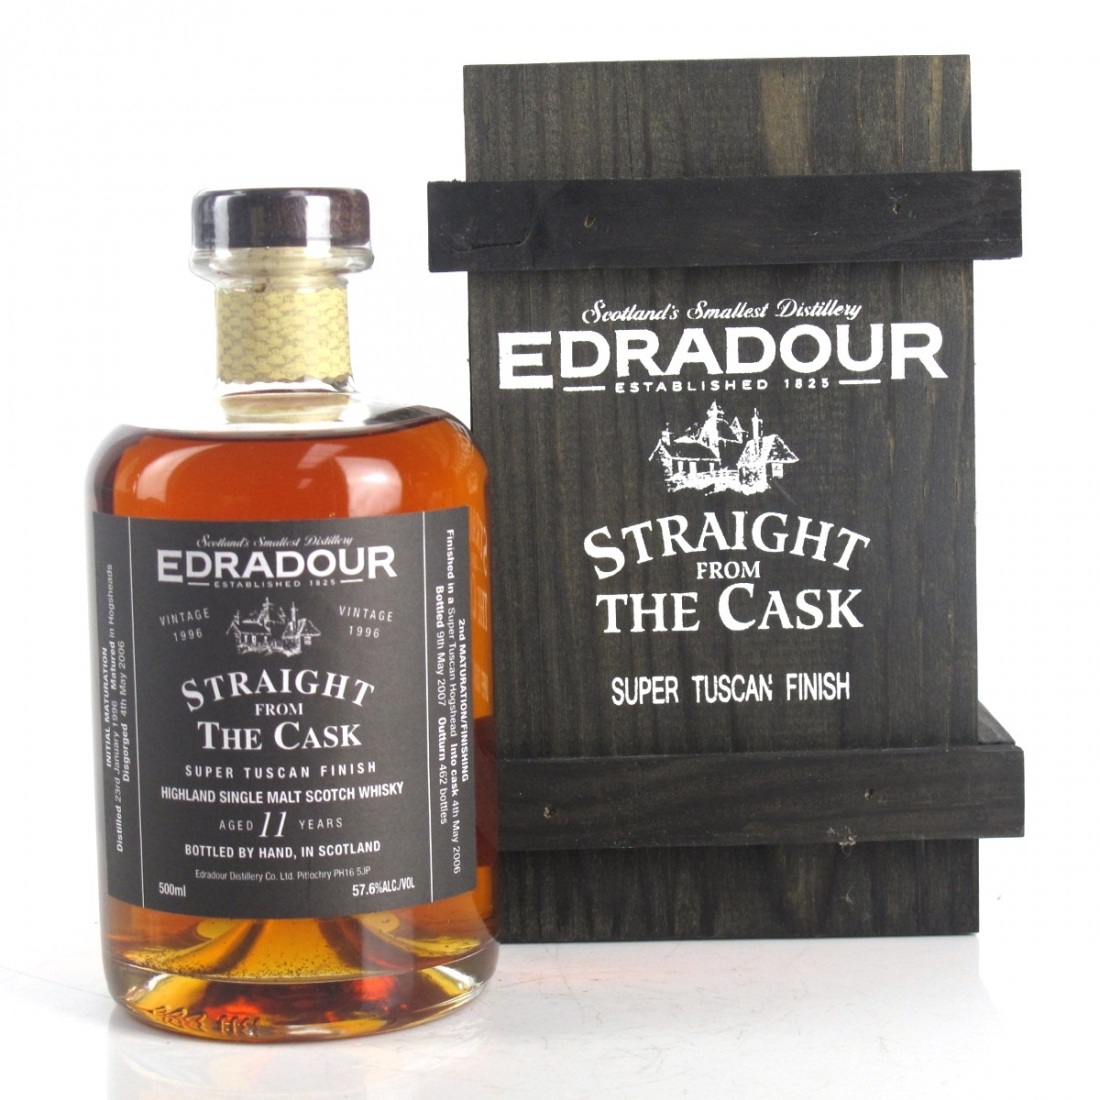 Edradour 1996 Straight from the Cask 11 Year Old 50cl / Super Tuscan Finish